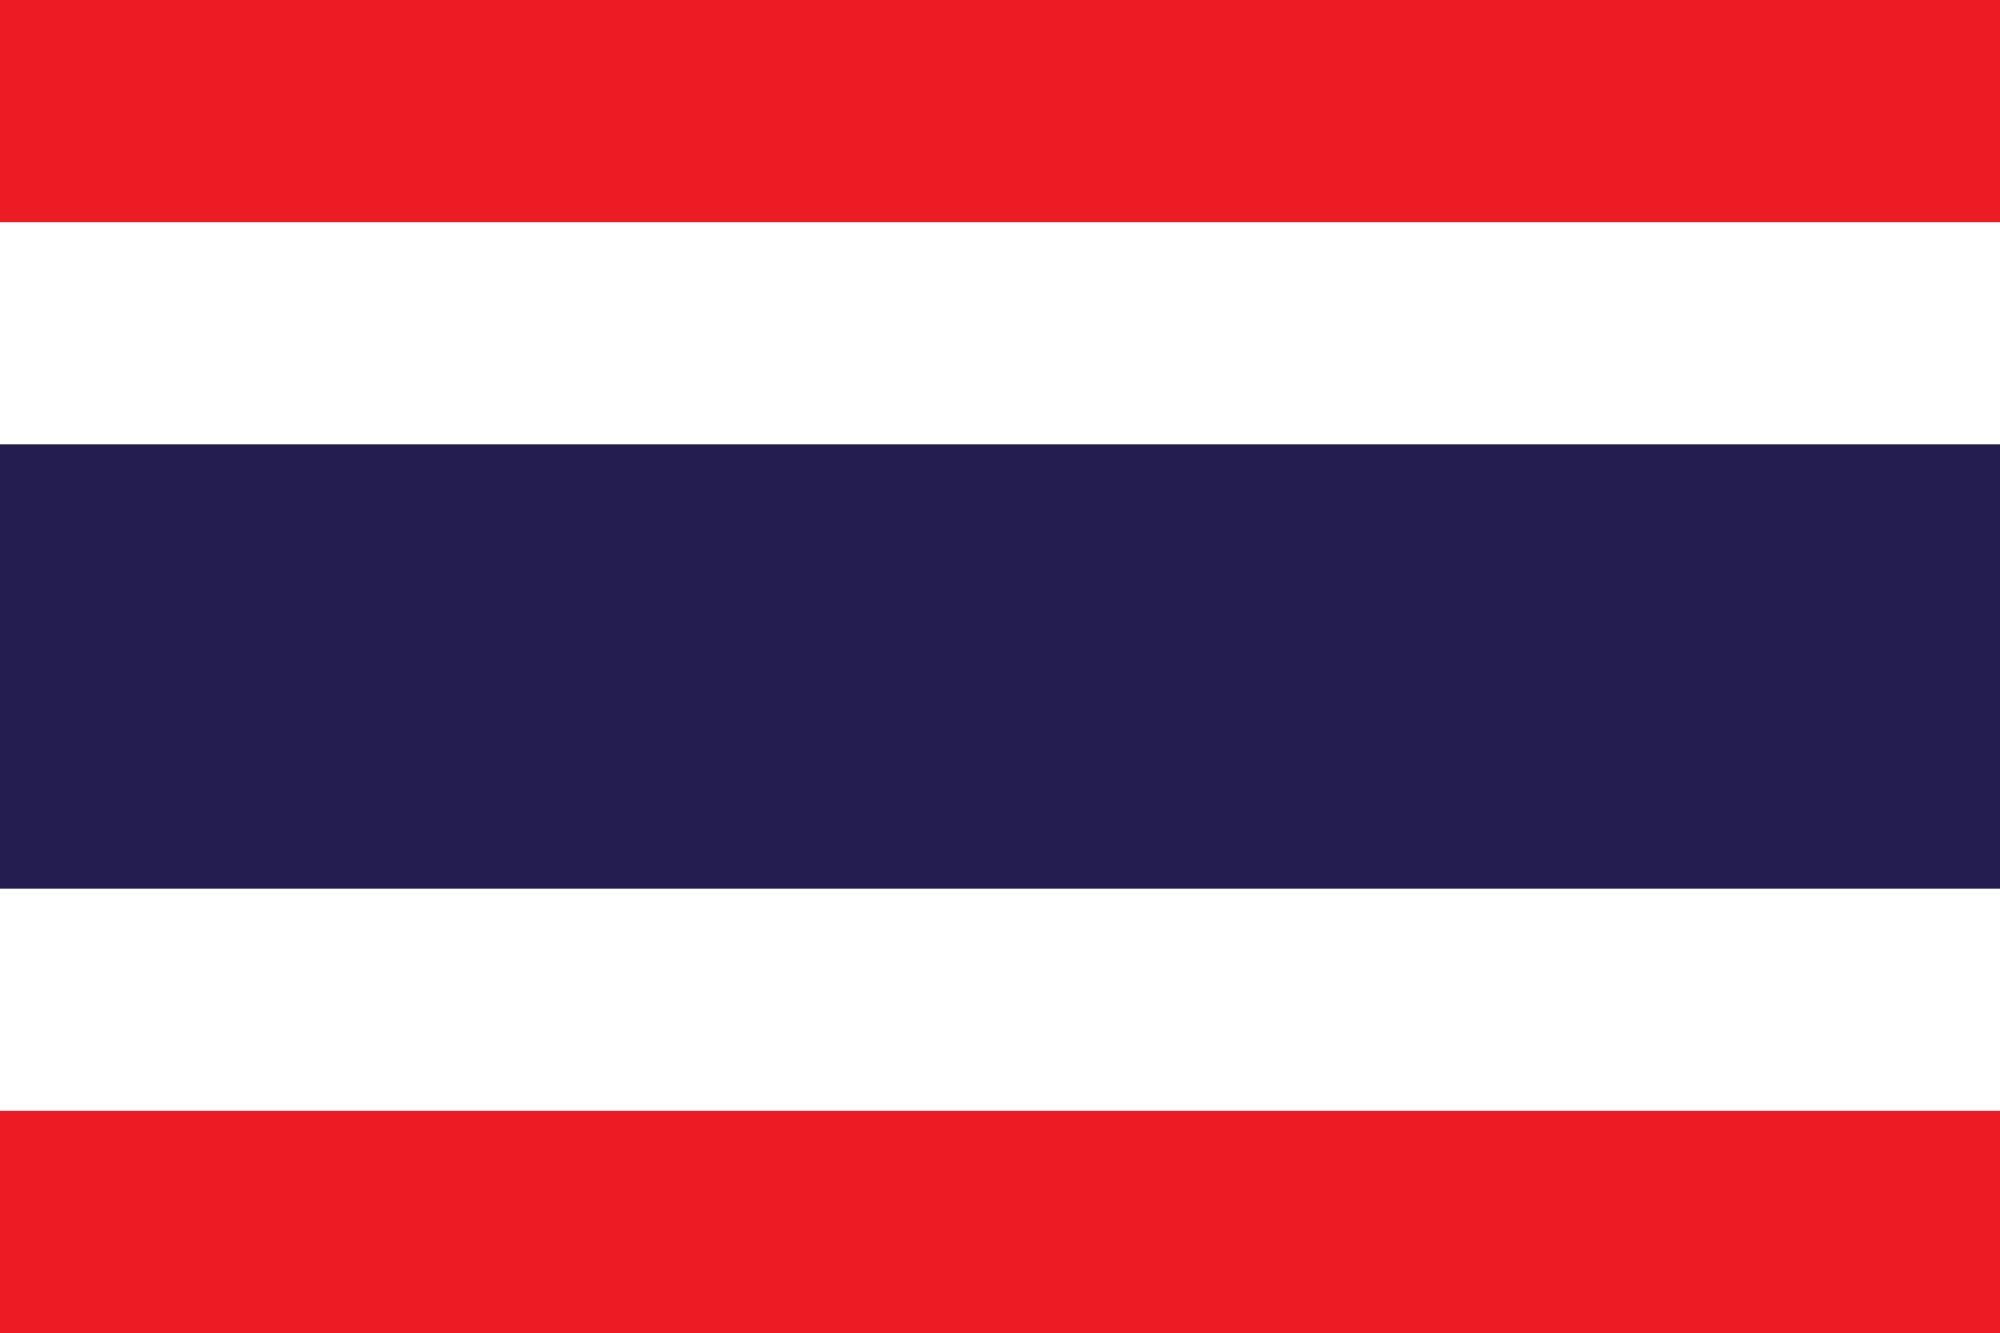 Flag of Thailand Wikipedia